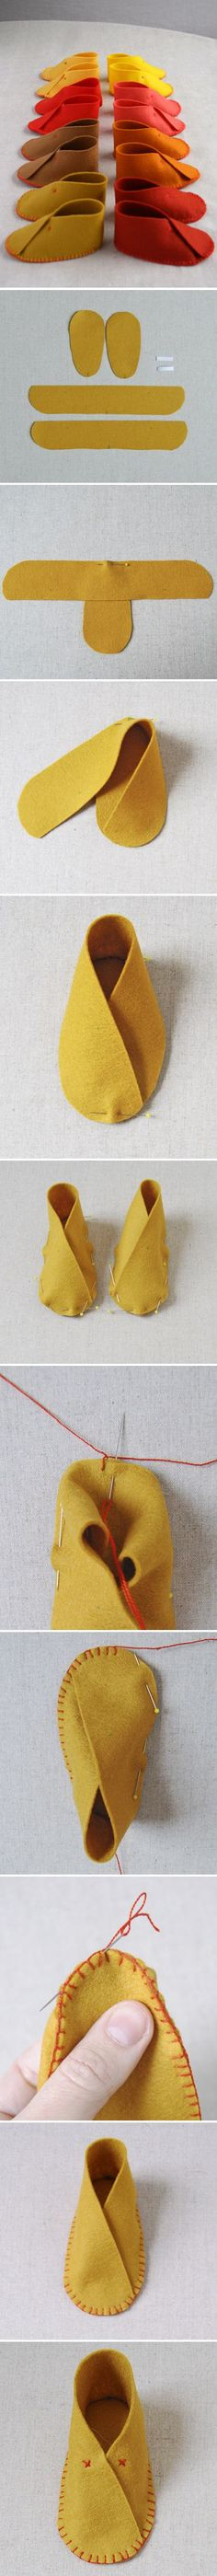 DIY : The Cutest Felt Baby Shoes Shut up right now! I love felt so much! These are adorable!